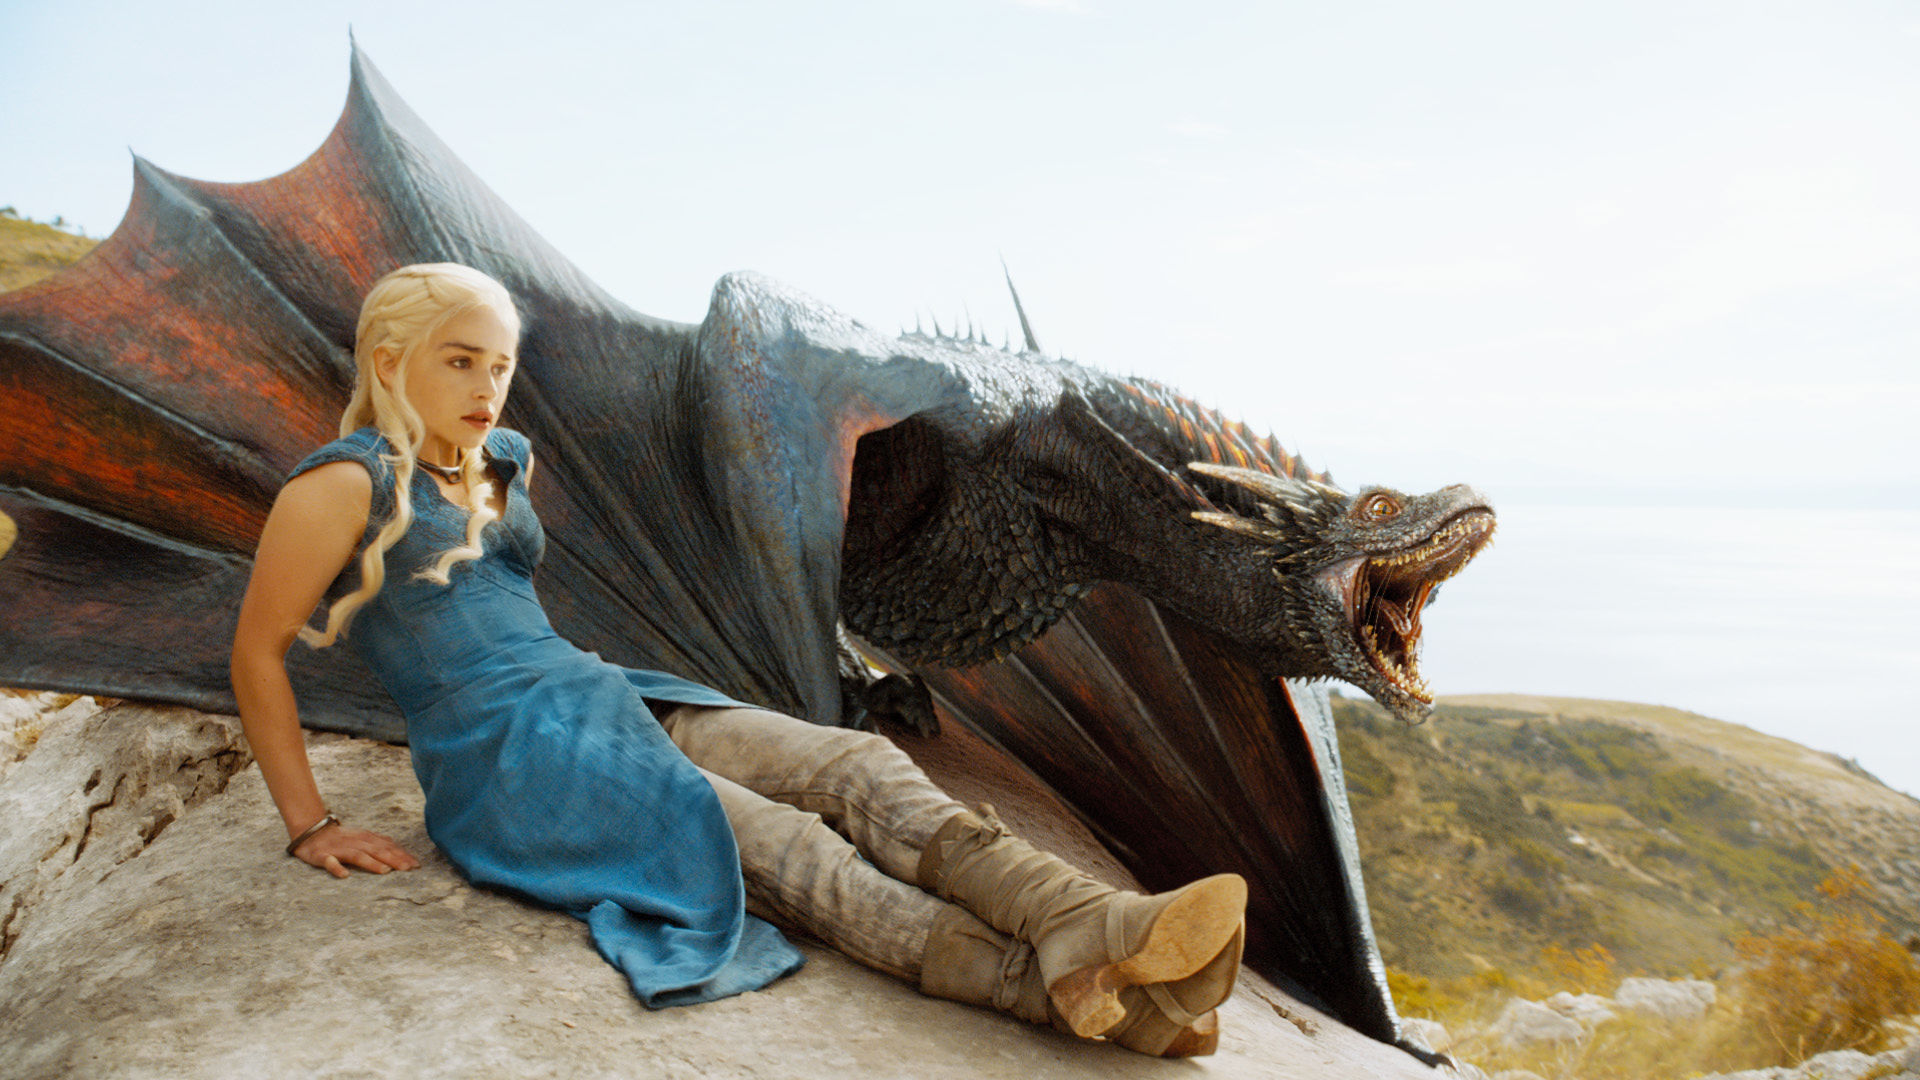 game-of-thrones-season-6-leaked-script-hints-at-daenerys-future-daenerys-and-drogon-wh-472933